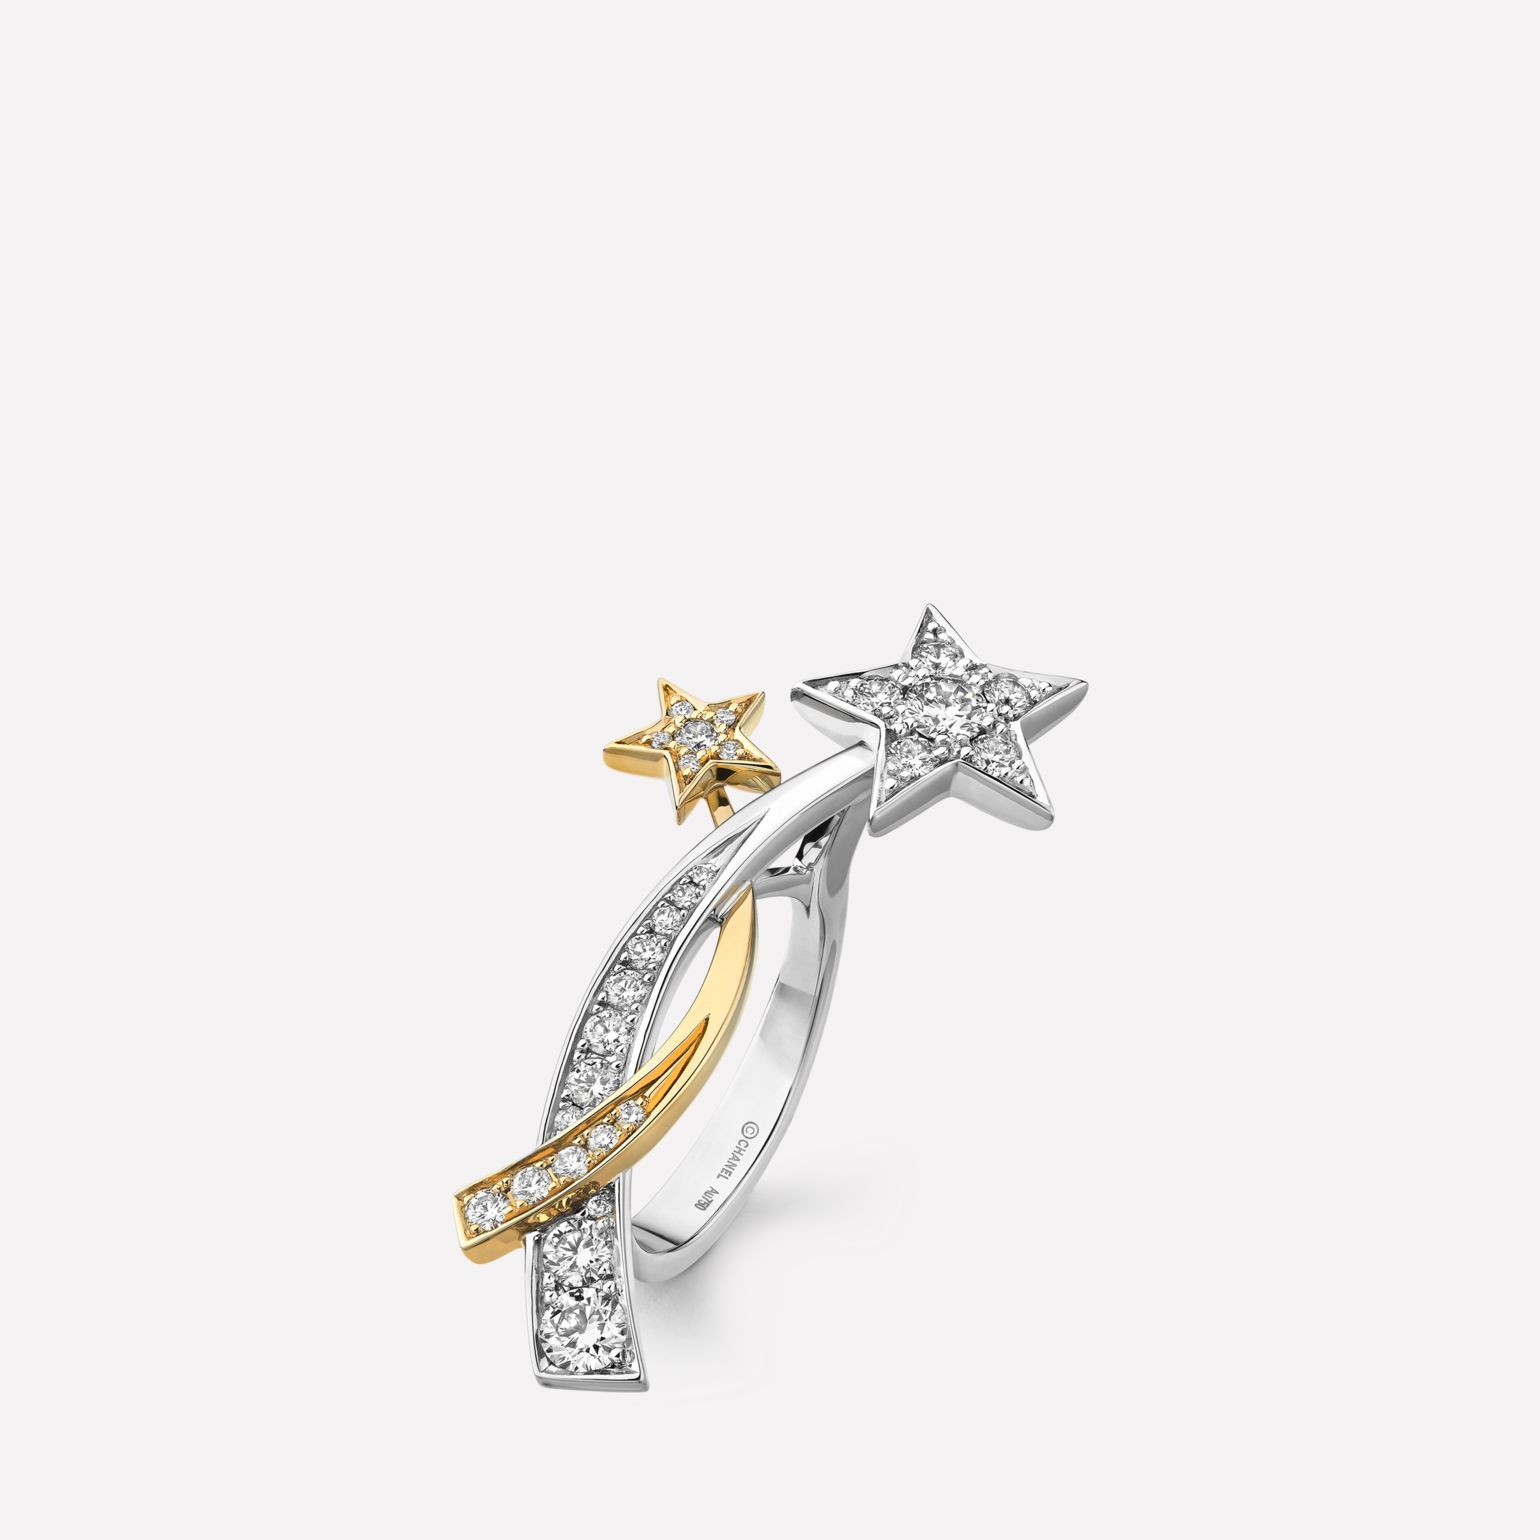 Comète Ring Two star ring in 18K white and yellow gold and diamonds